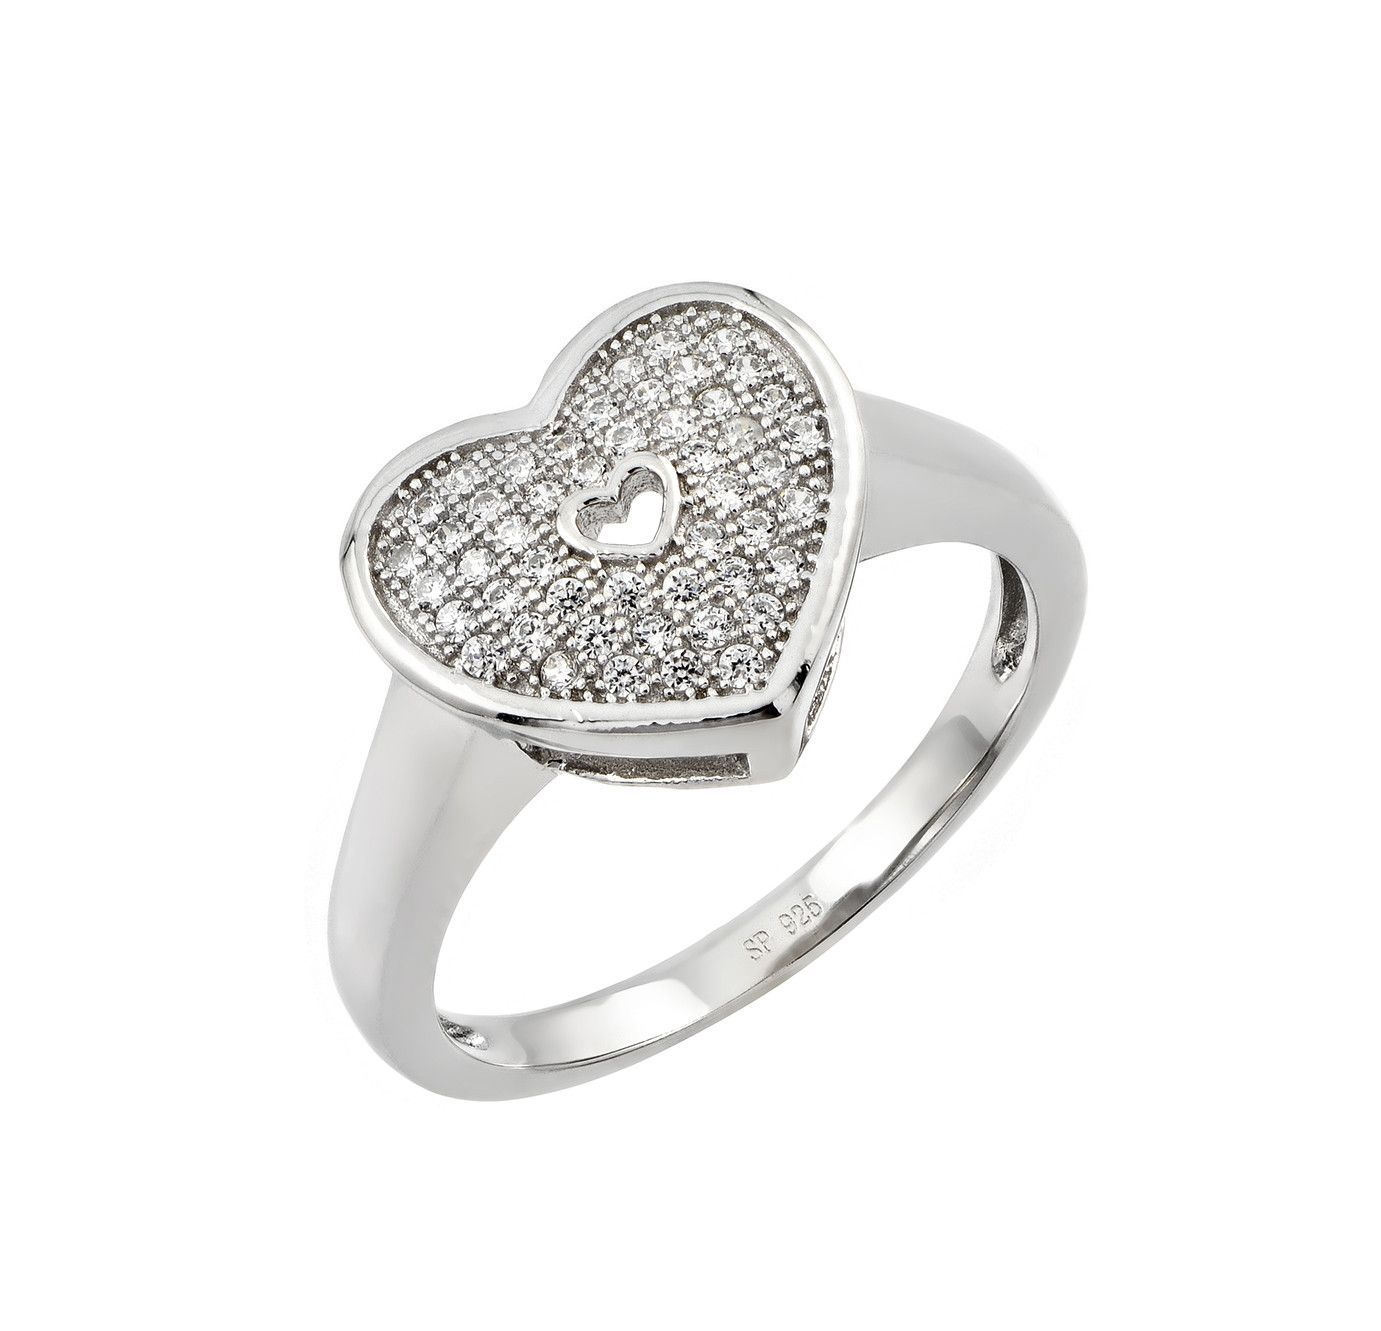 .925 Sterling Silver Rhodium Plated Mirco Pave Heart Cubic Zirconia Ring